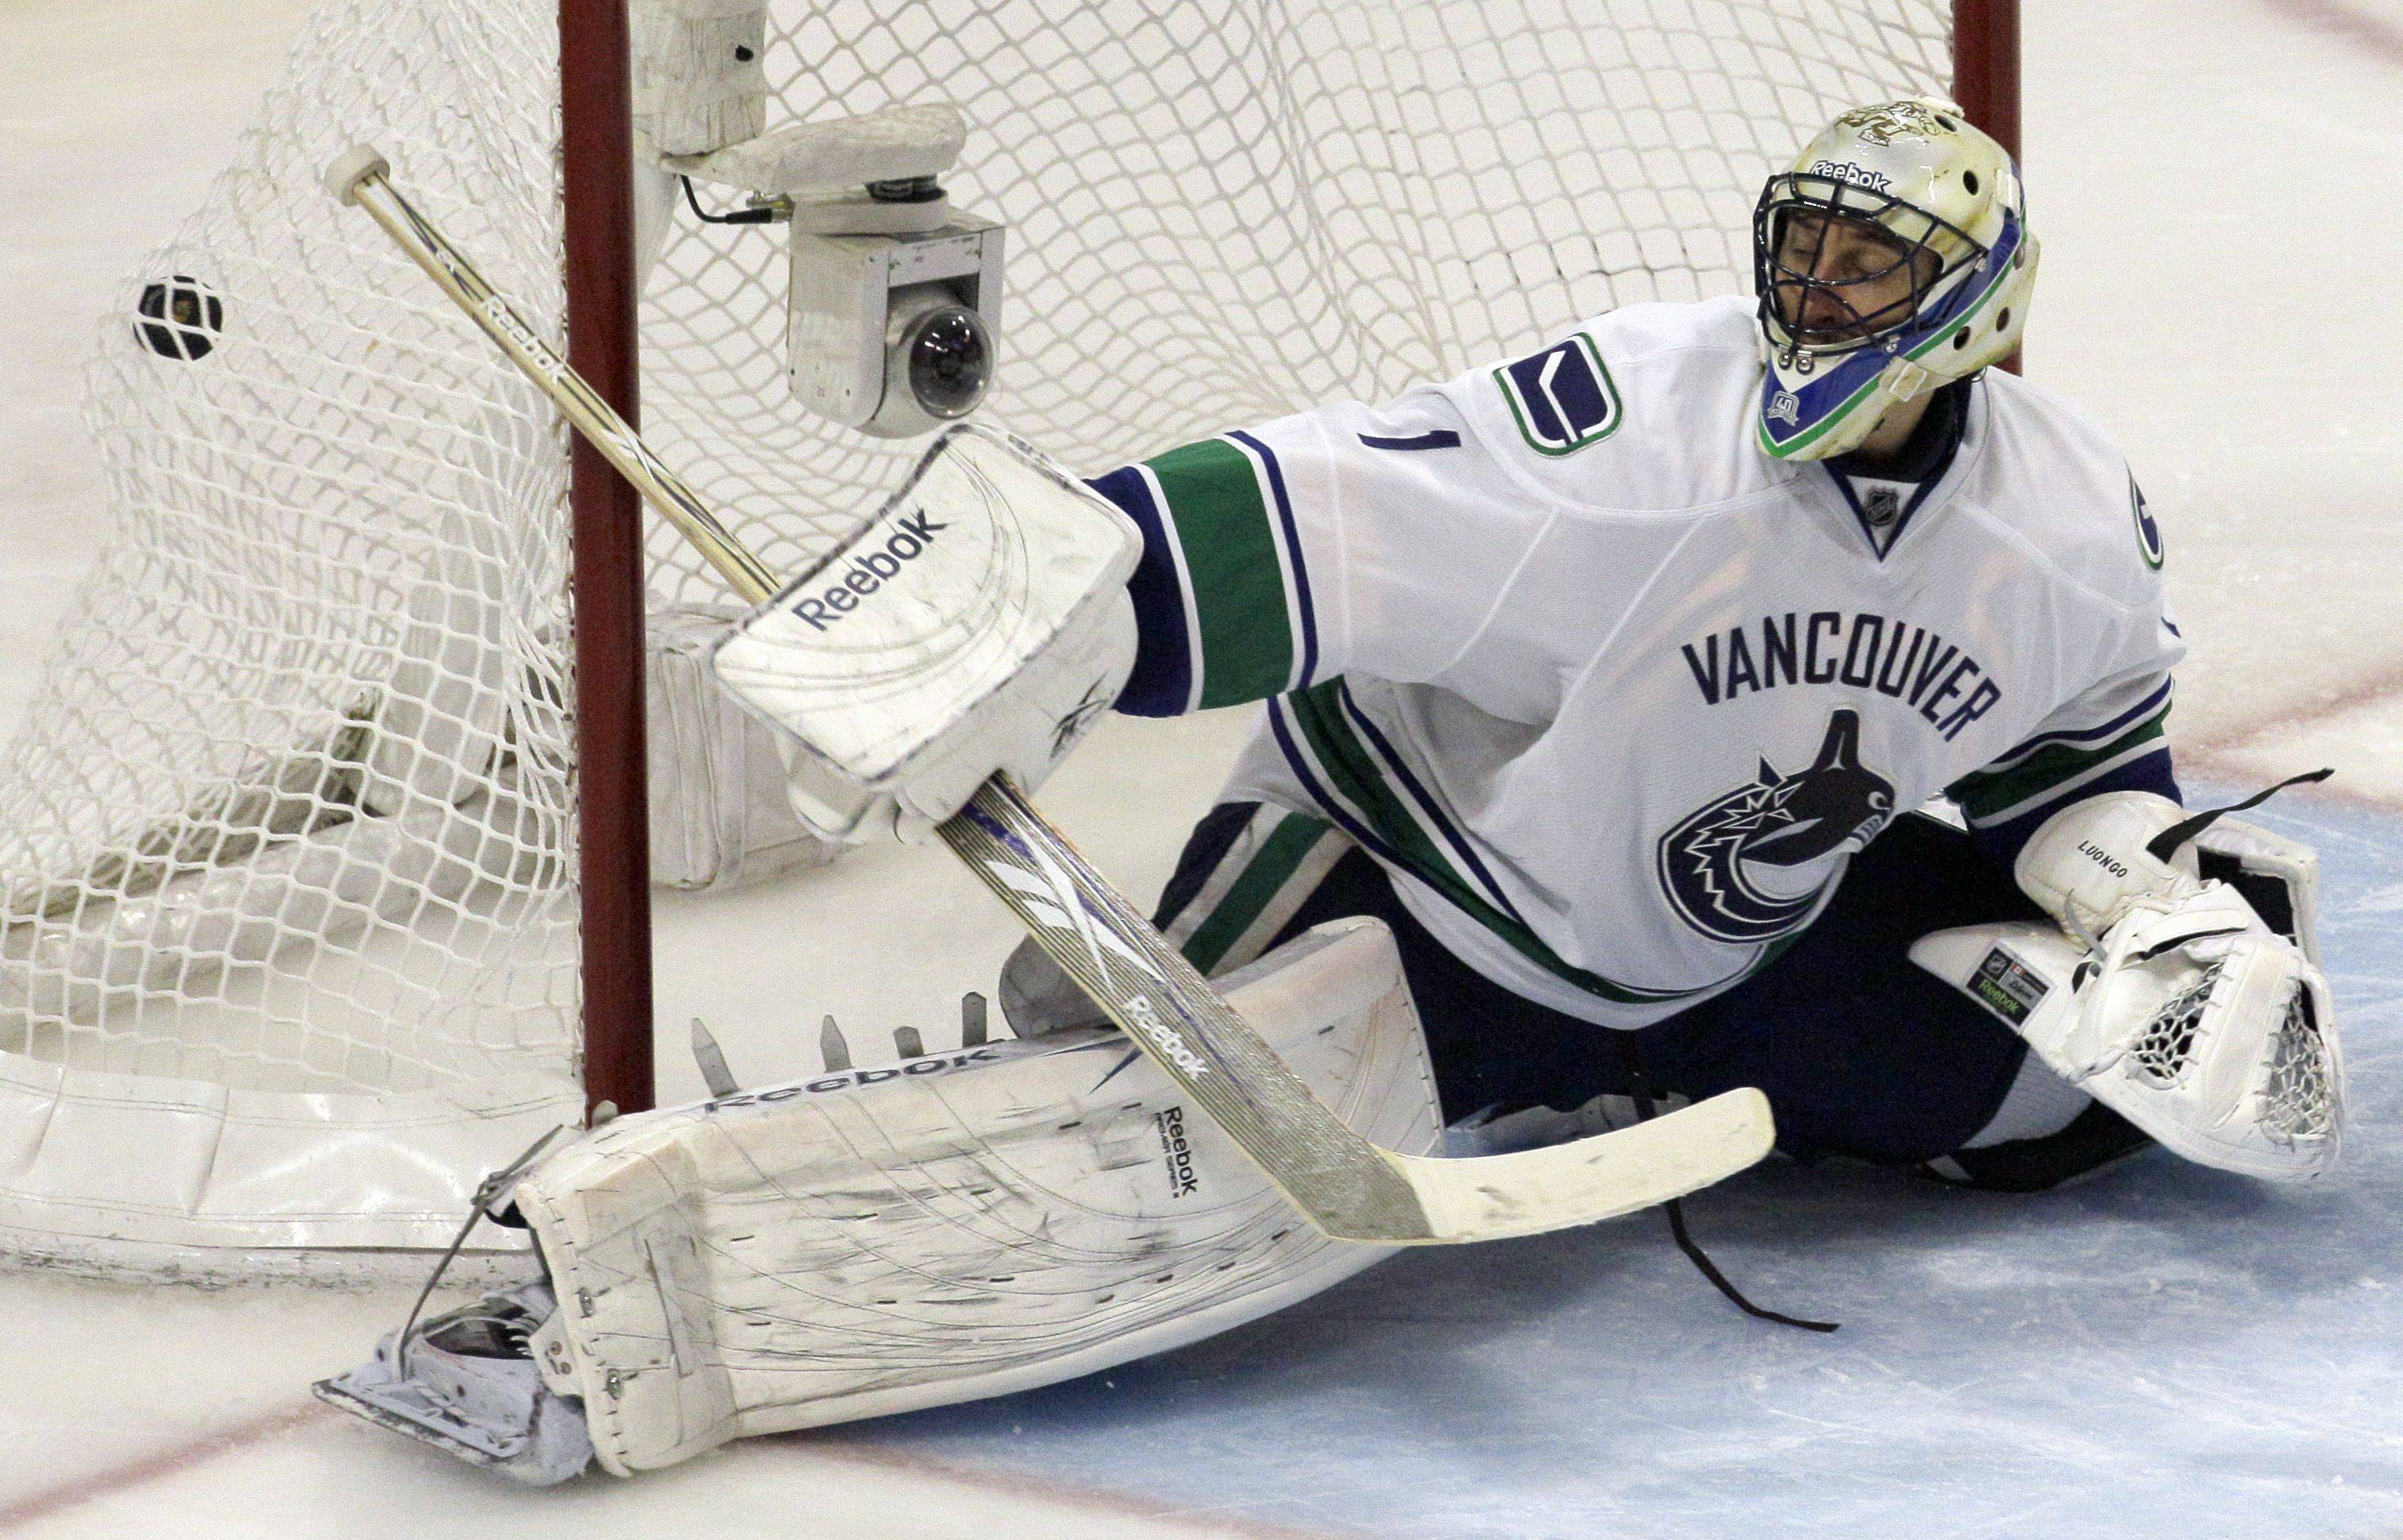 Vancouver Canucks goalie Roberto Luongo is unable to make the save on a shot by Chicago Blackhawks center Patrick Sharp.